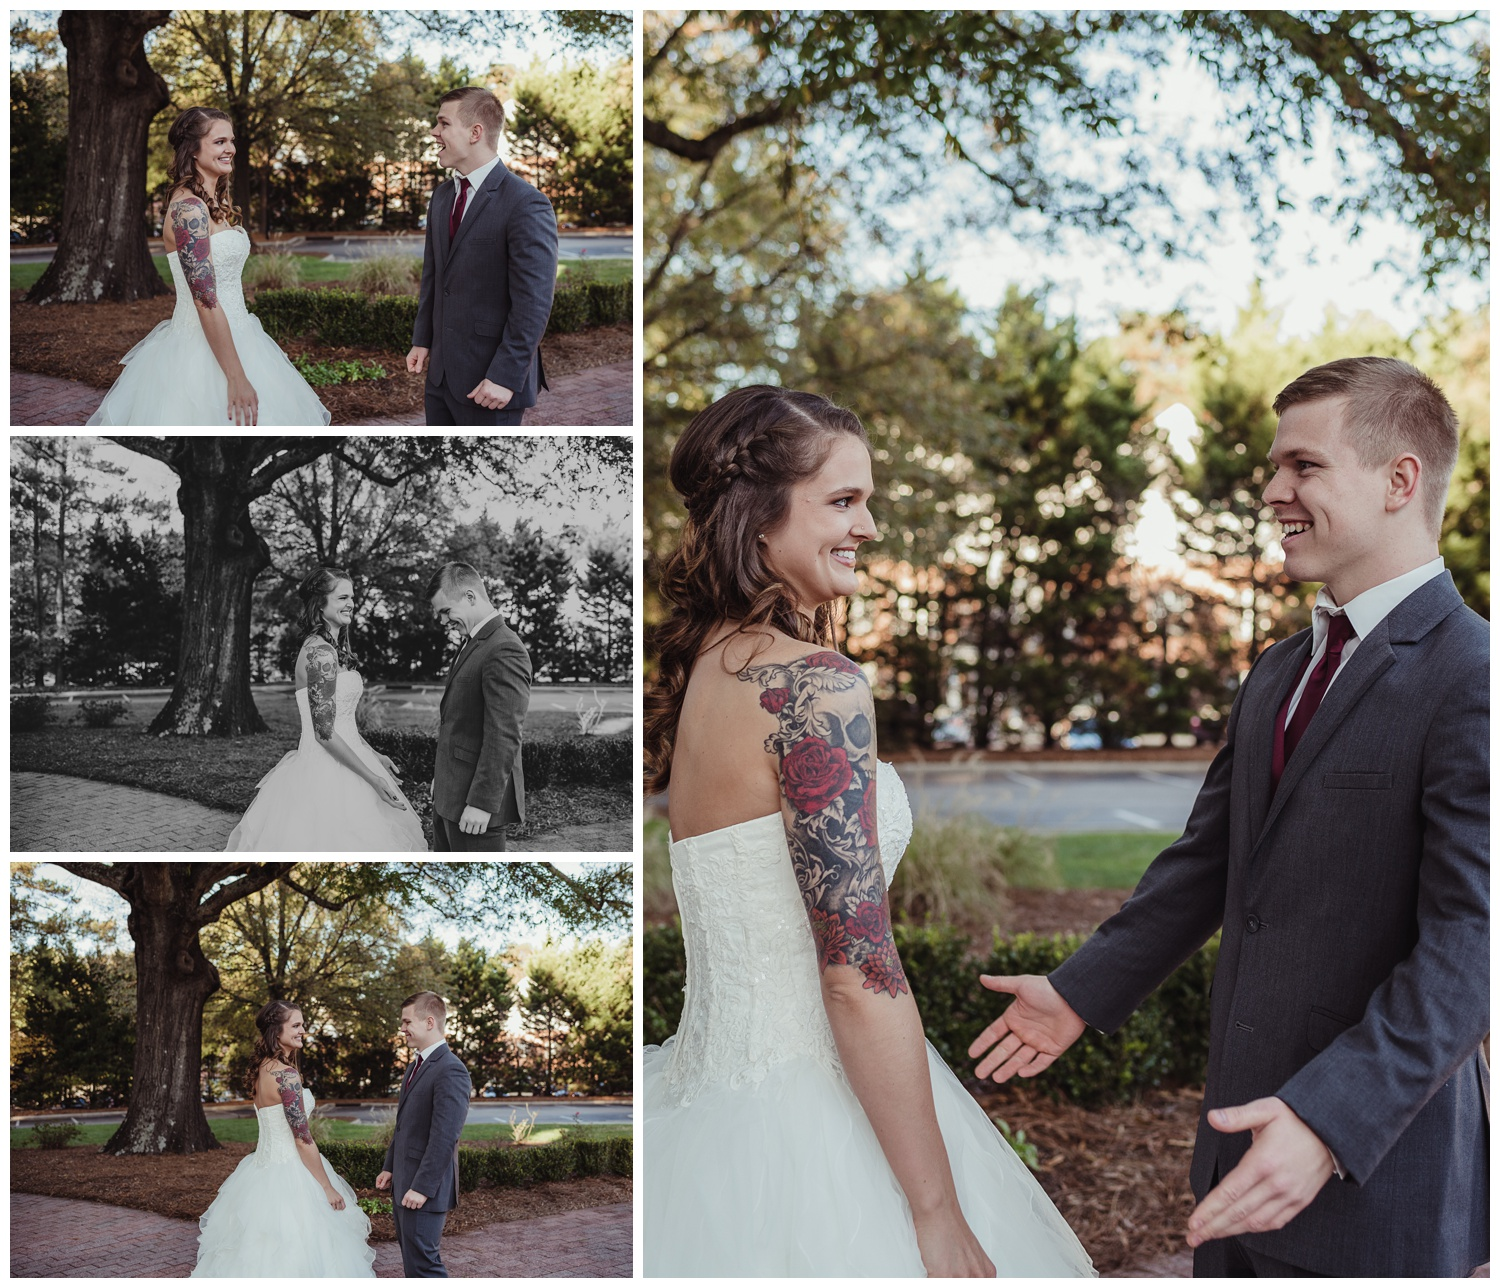 raleigh-wedding-photographer-first-look-1705-east-davids-bridal-caitlyn-and-evan_0002.jpg